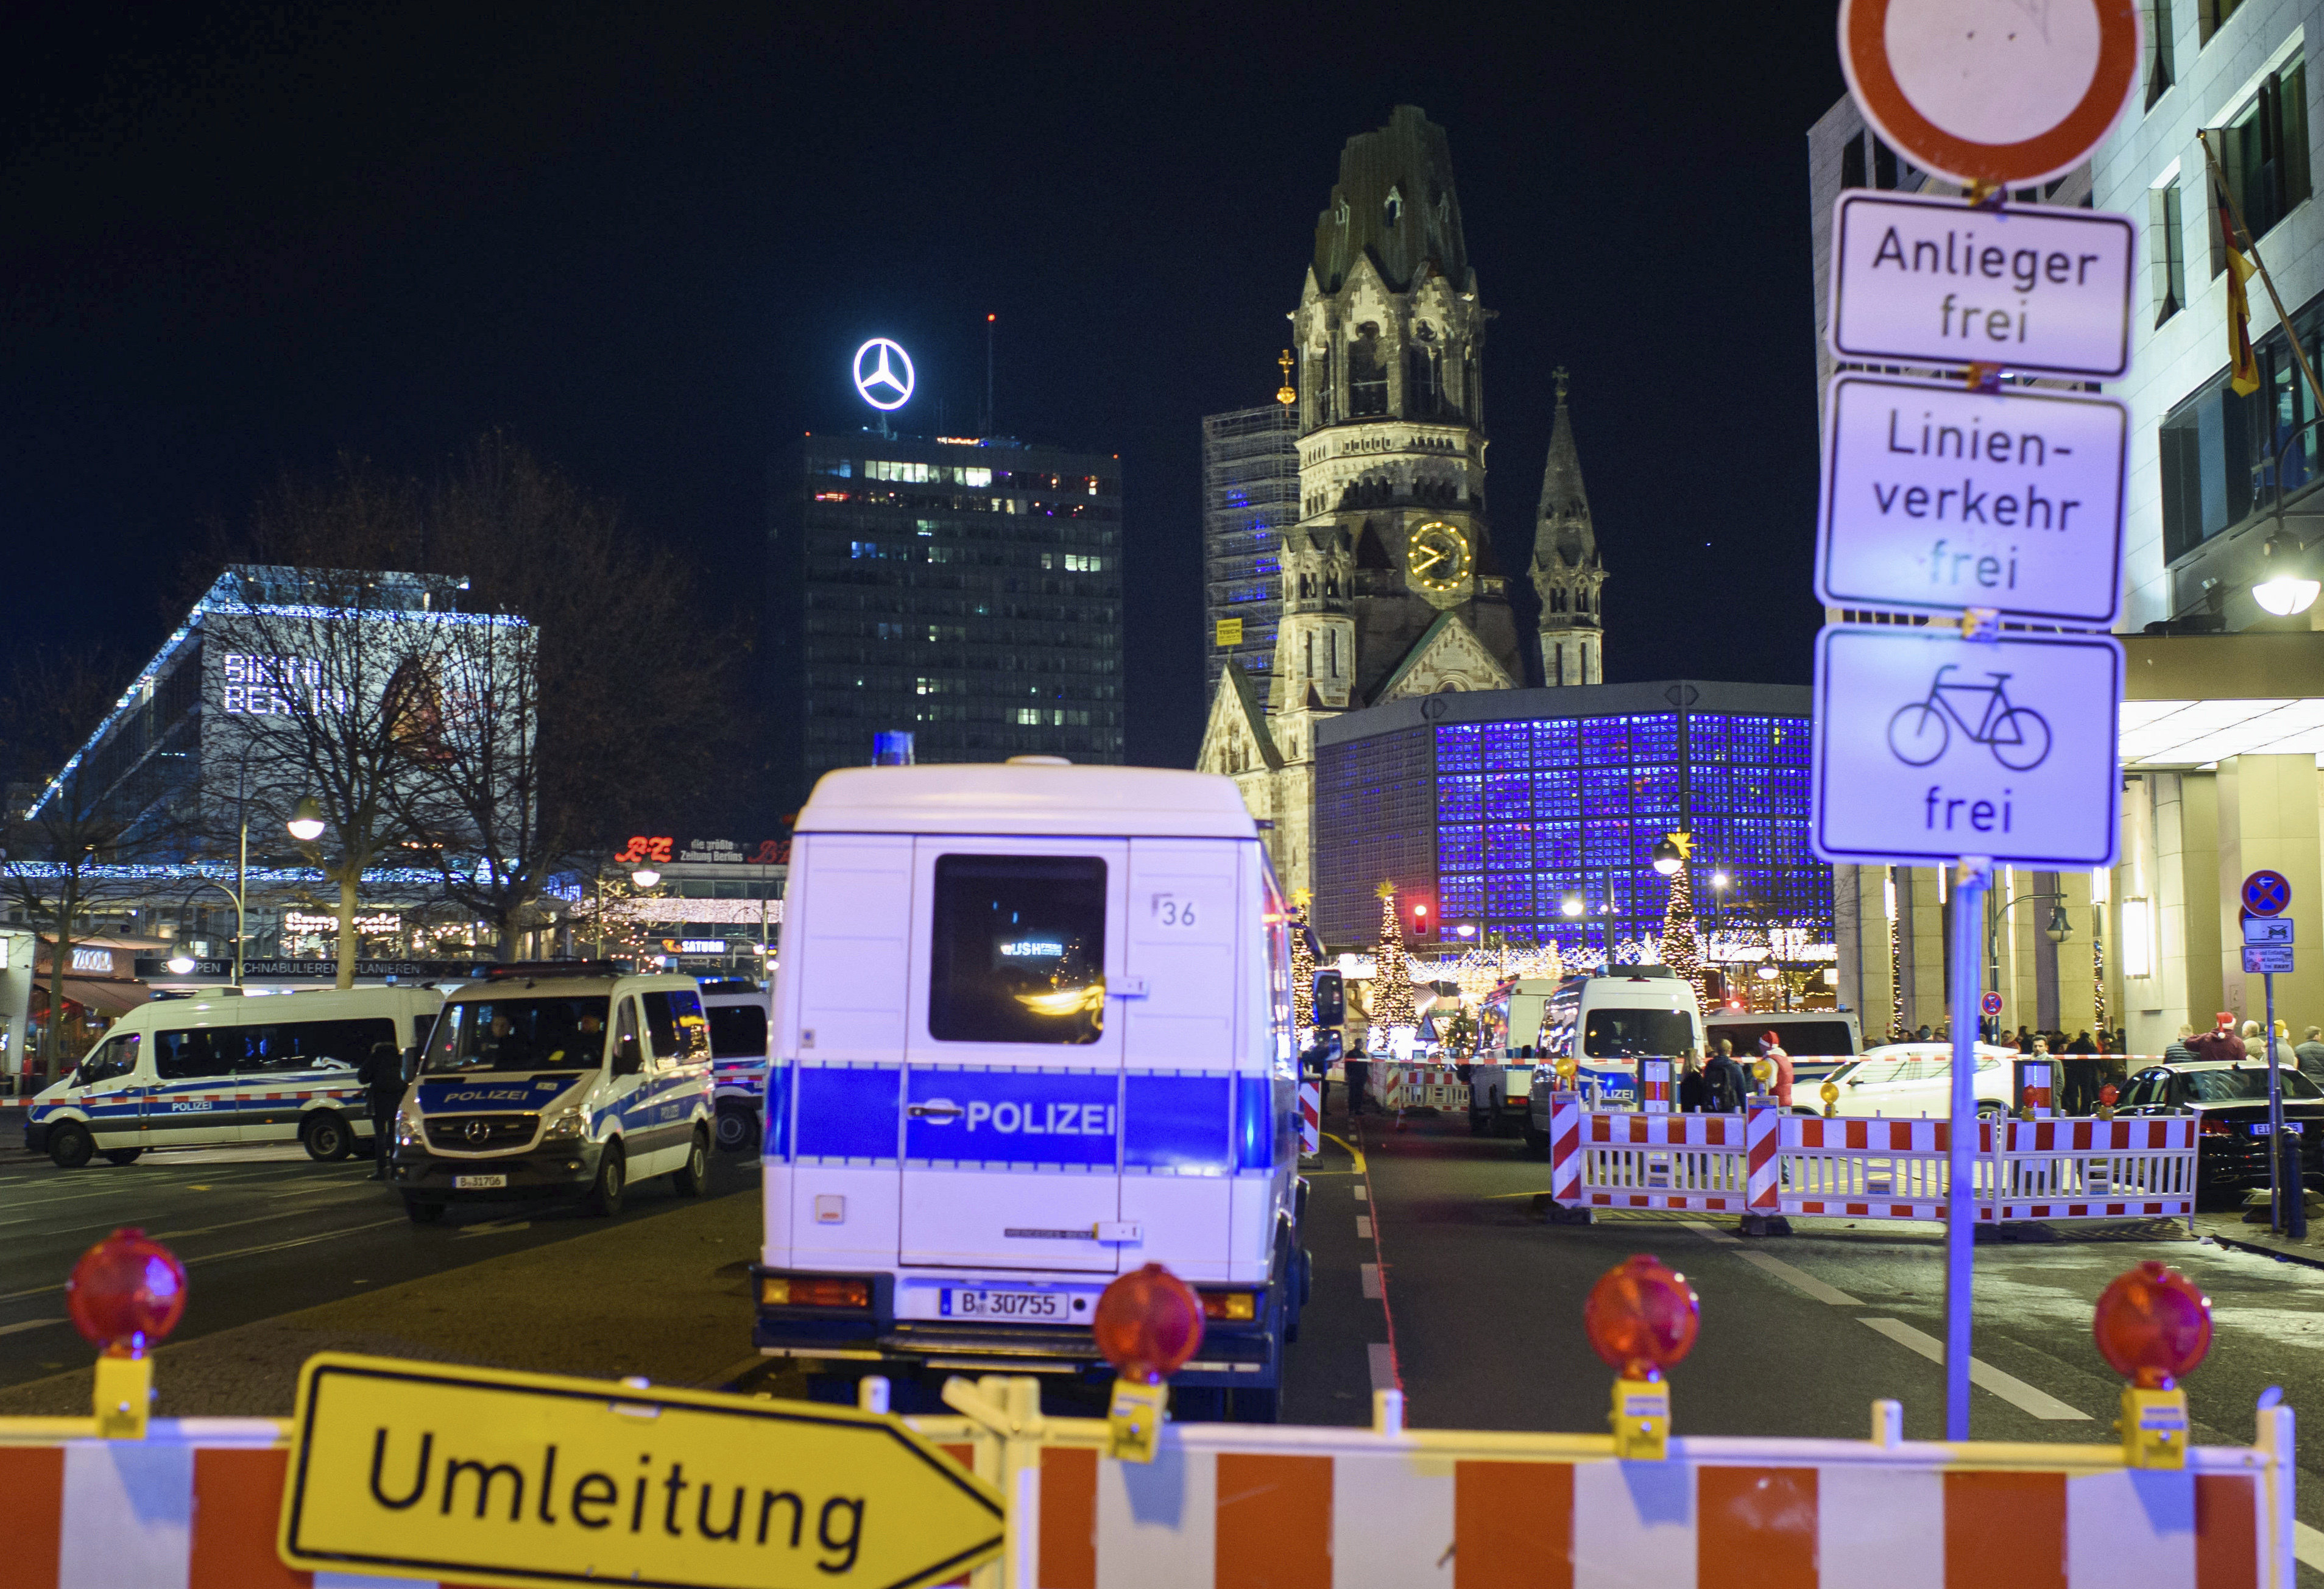 Berlin Christmas market that was attacked in 2016 evacuated